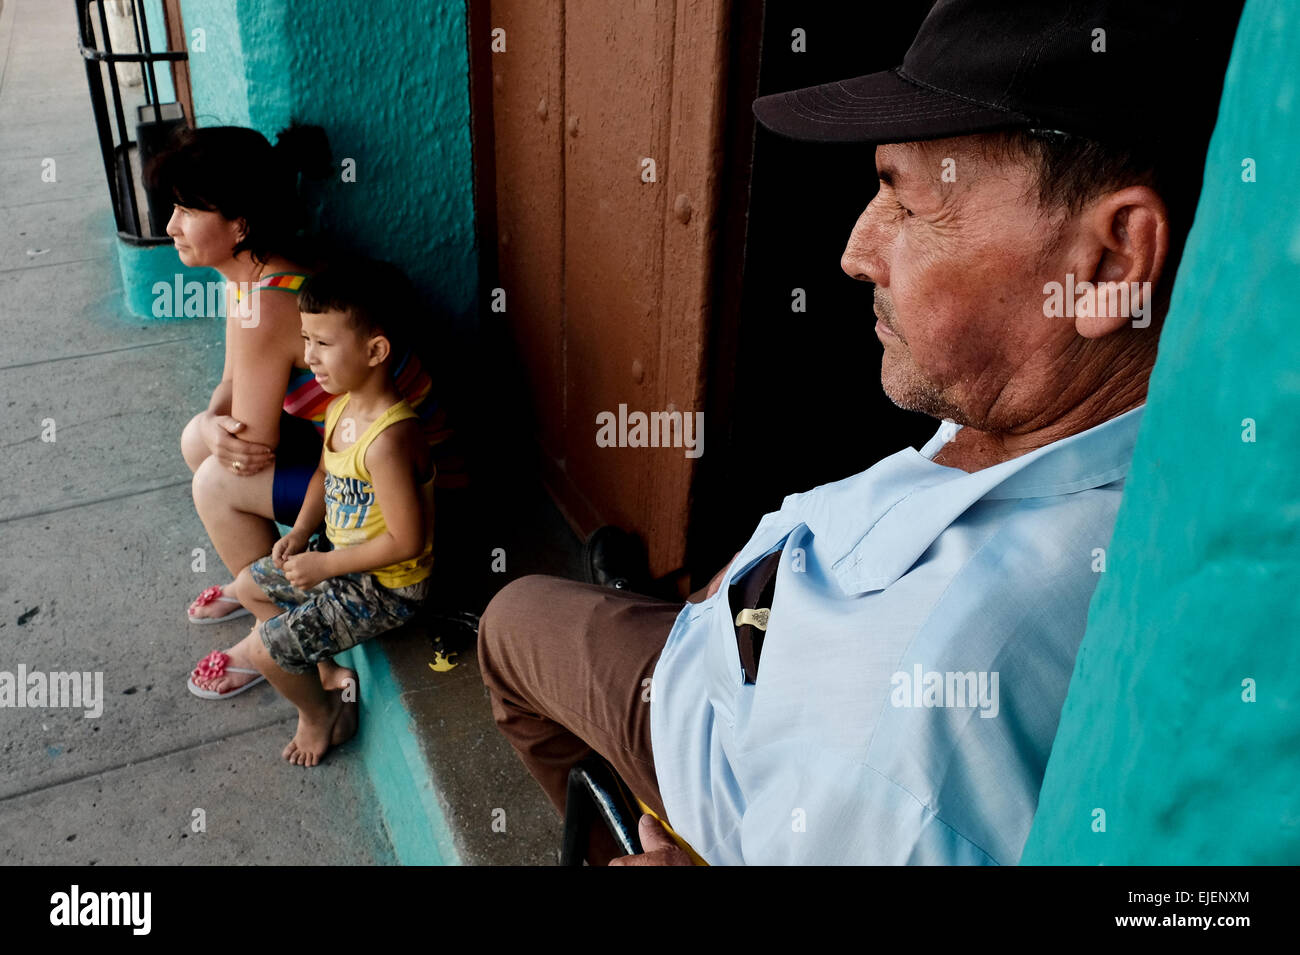 A man watches over his family on the doorstep to their home in the 500 year old city of Sancti Spiritus, Cuba. Cubans - Stock Image